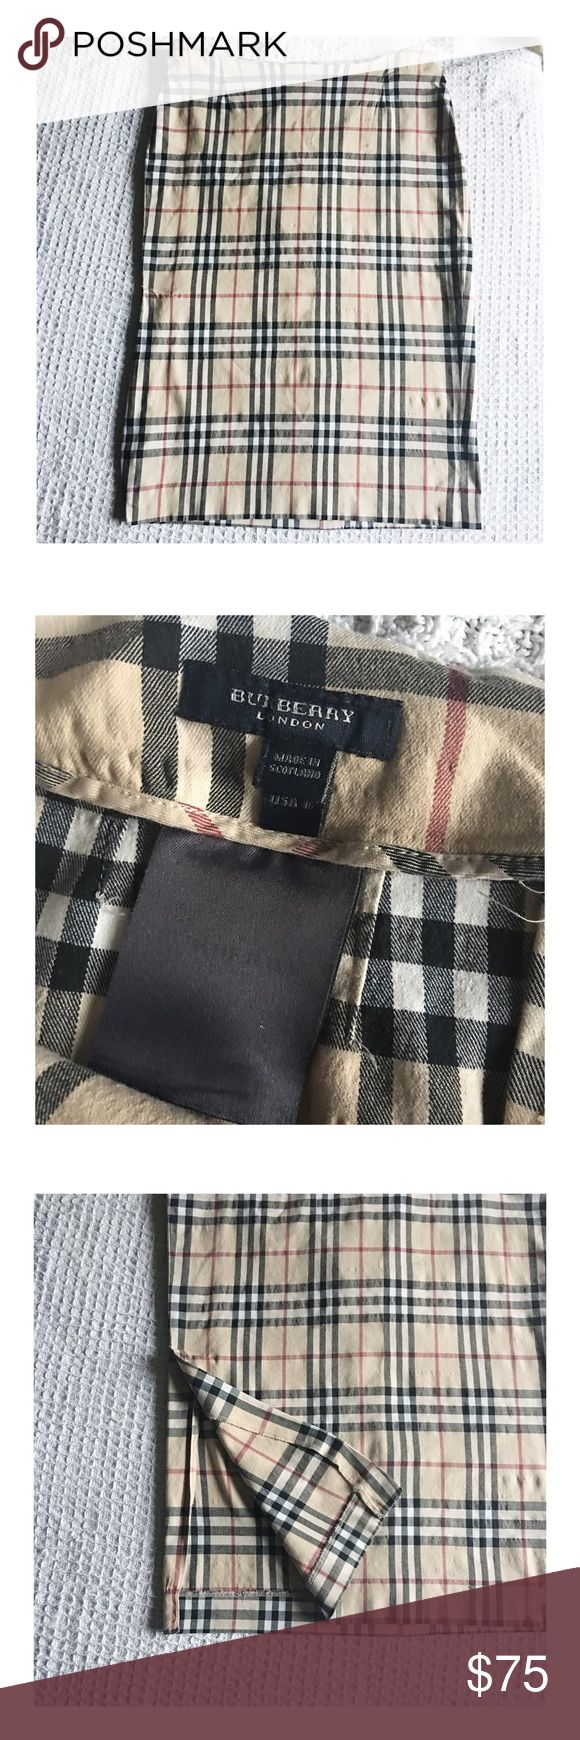 Burberry Plaid Skirt Traditional Burberry print Pencil Skirt size 10.  100% Authentic.  Has slit on one side of Skirt. Burberry Skirts Pencil